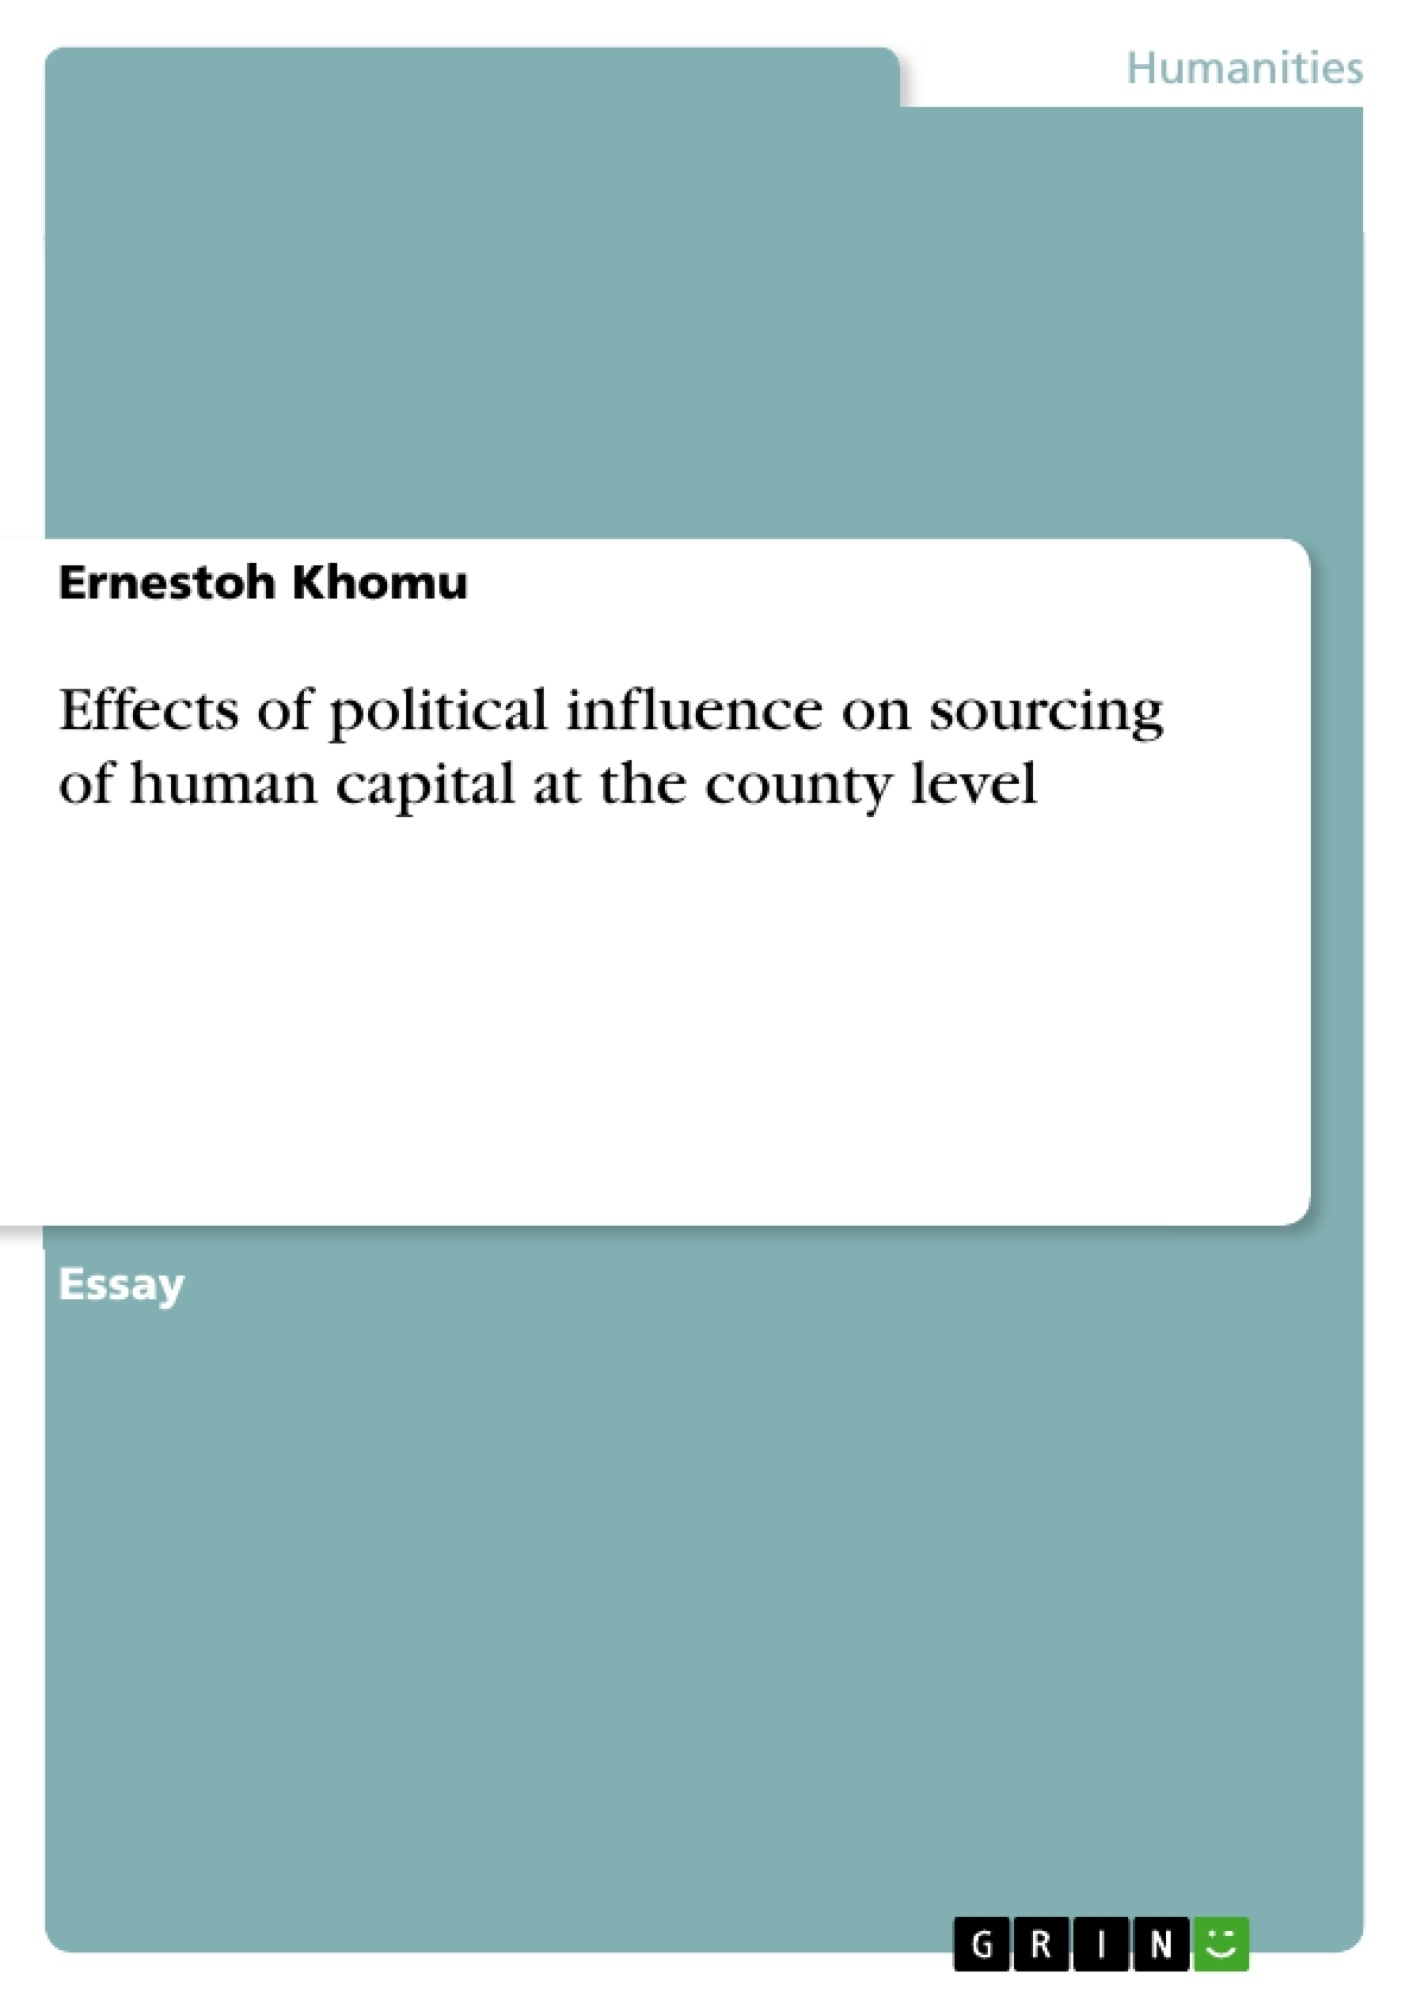 Effects Of Political Influence On Sourcing Of Human Capital At The